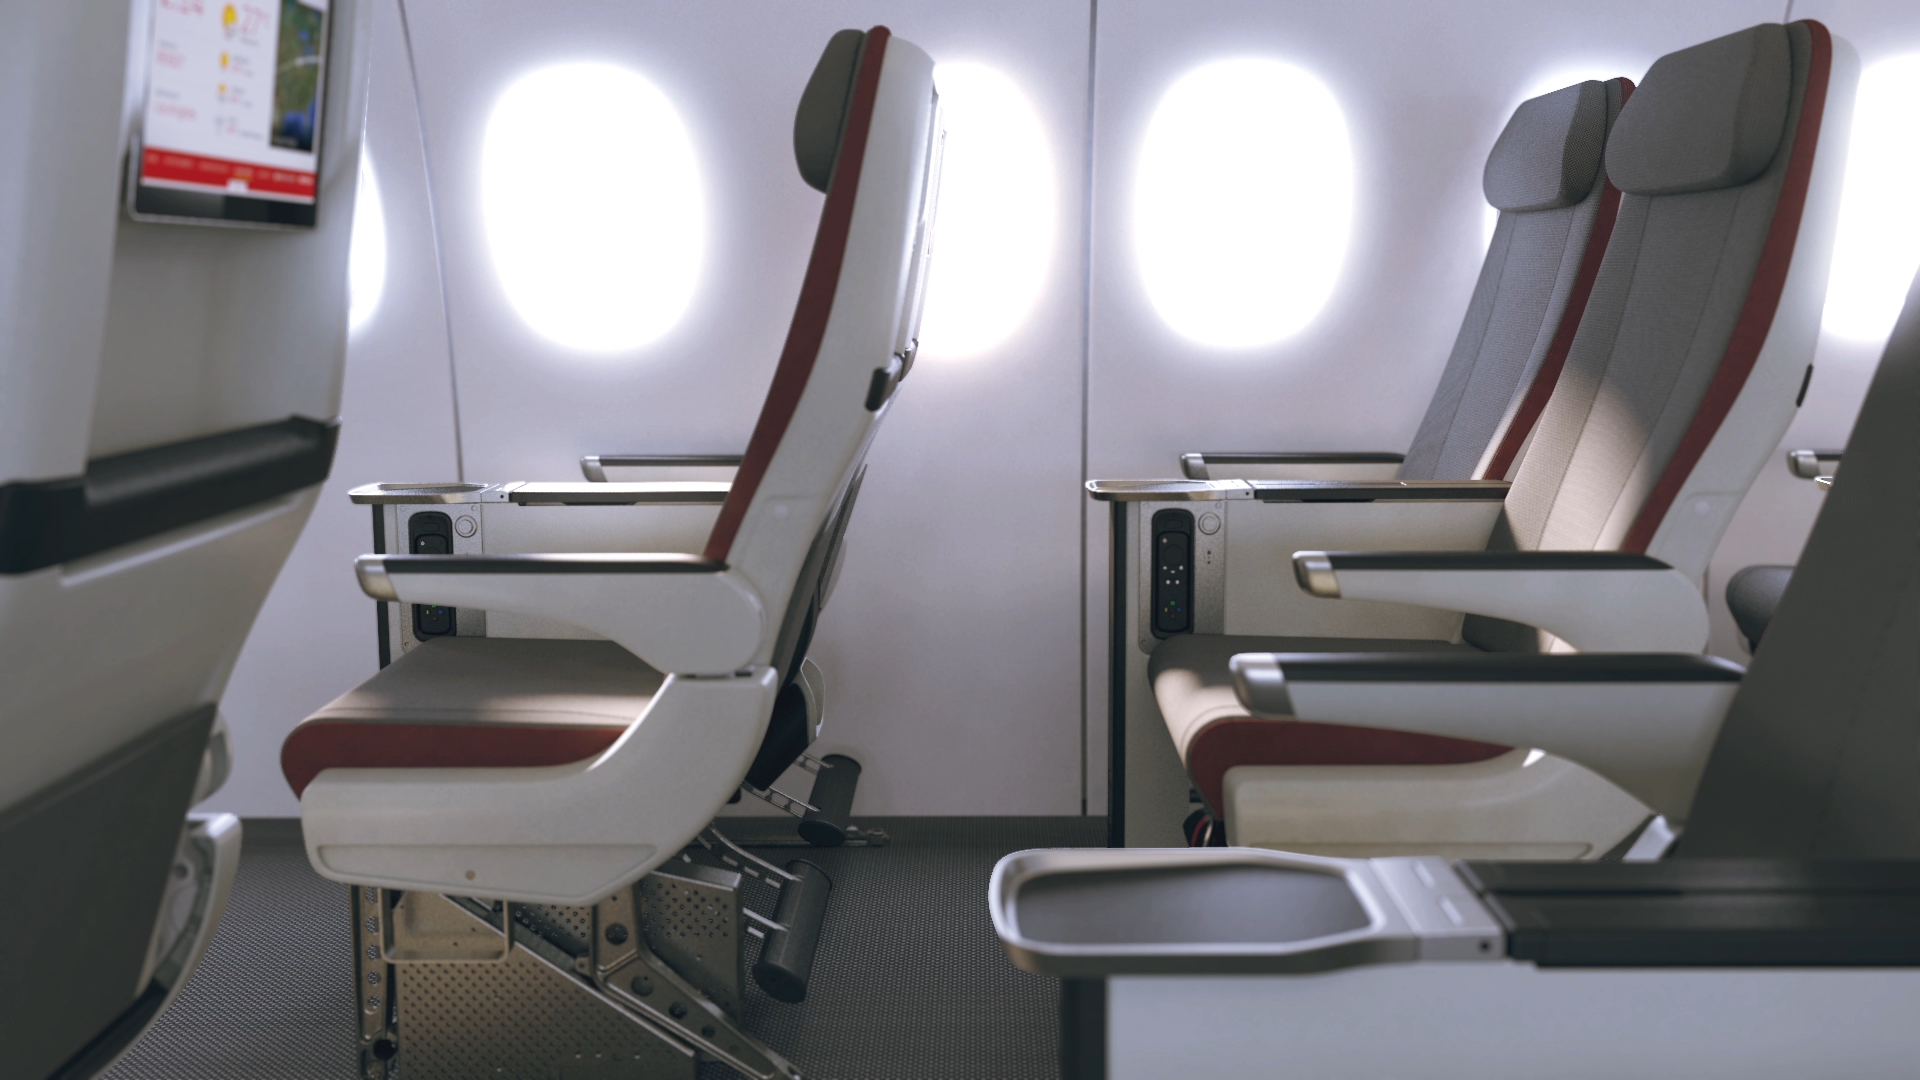 premium economy class now available for purchase on iberia airlines between the us and spain business wire premium economy class now available for